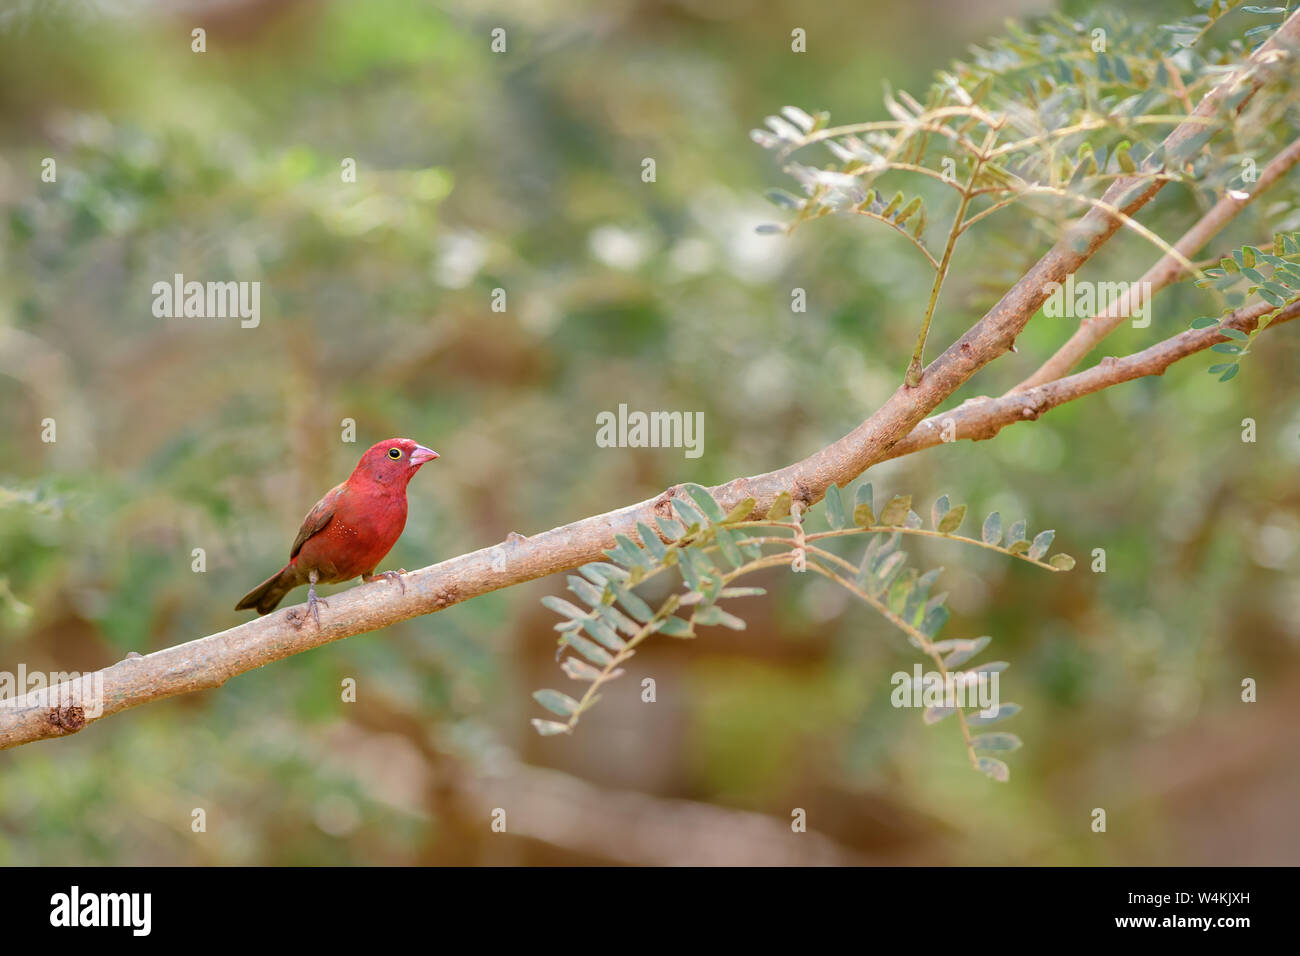 Red-billed Firefinch - Lagonosticta senegala, beautiful small red perching bird from African bushes and gardens, Senegal. Stock Photo